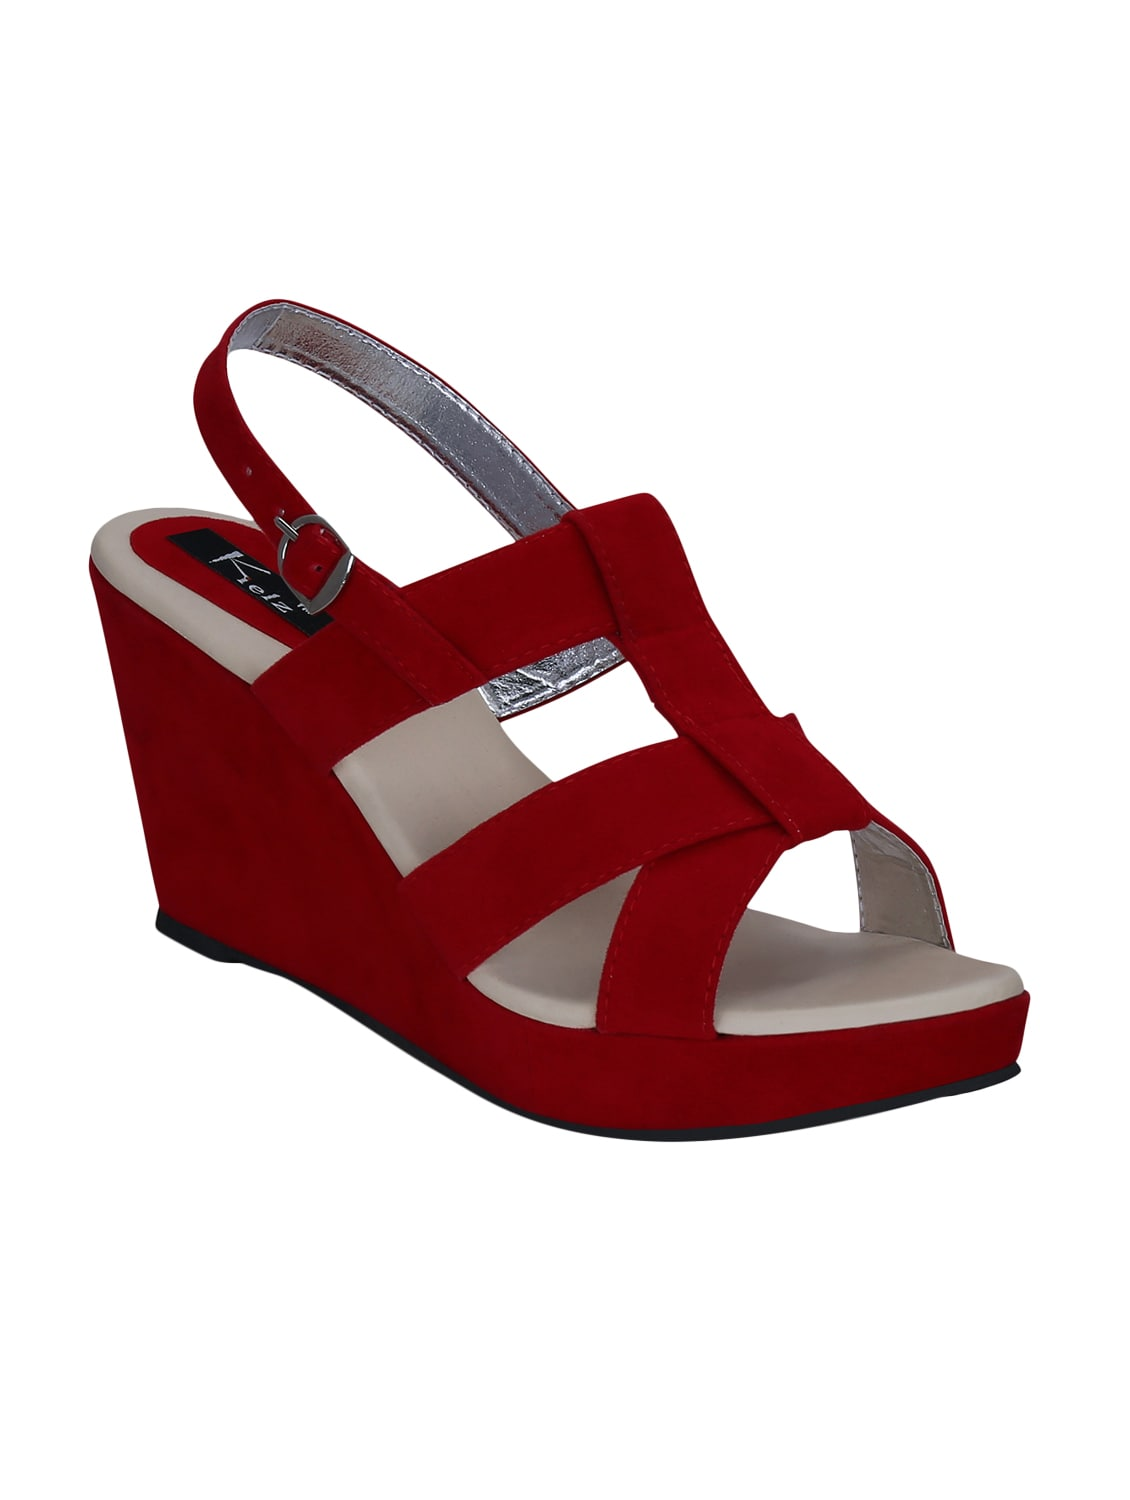 6433cd2c5 Buy Kielz-red-wedge-sandals for Women from Kielz for ₹796 at 47% off